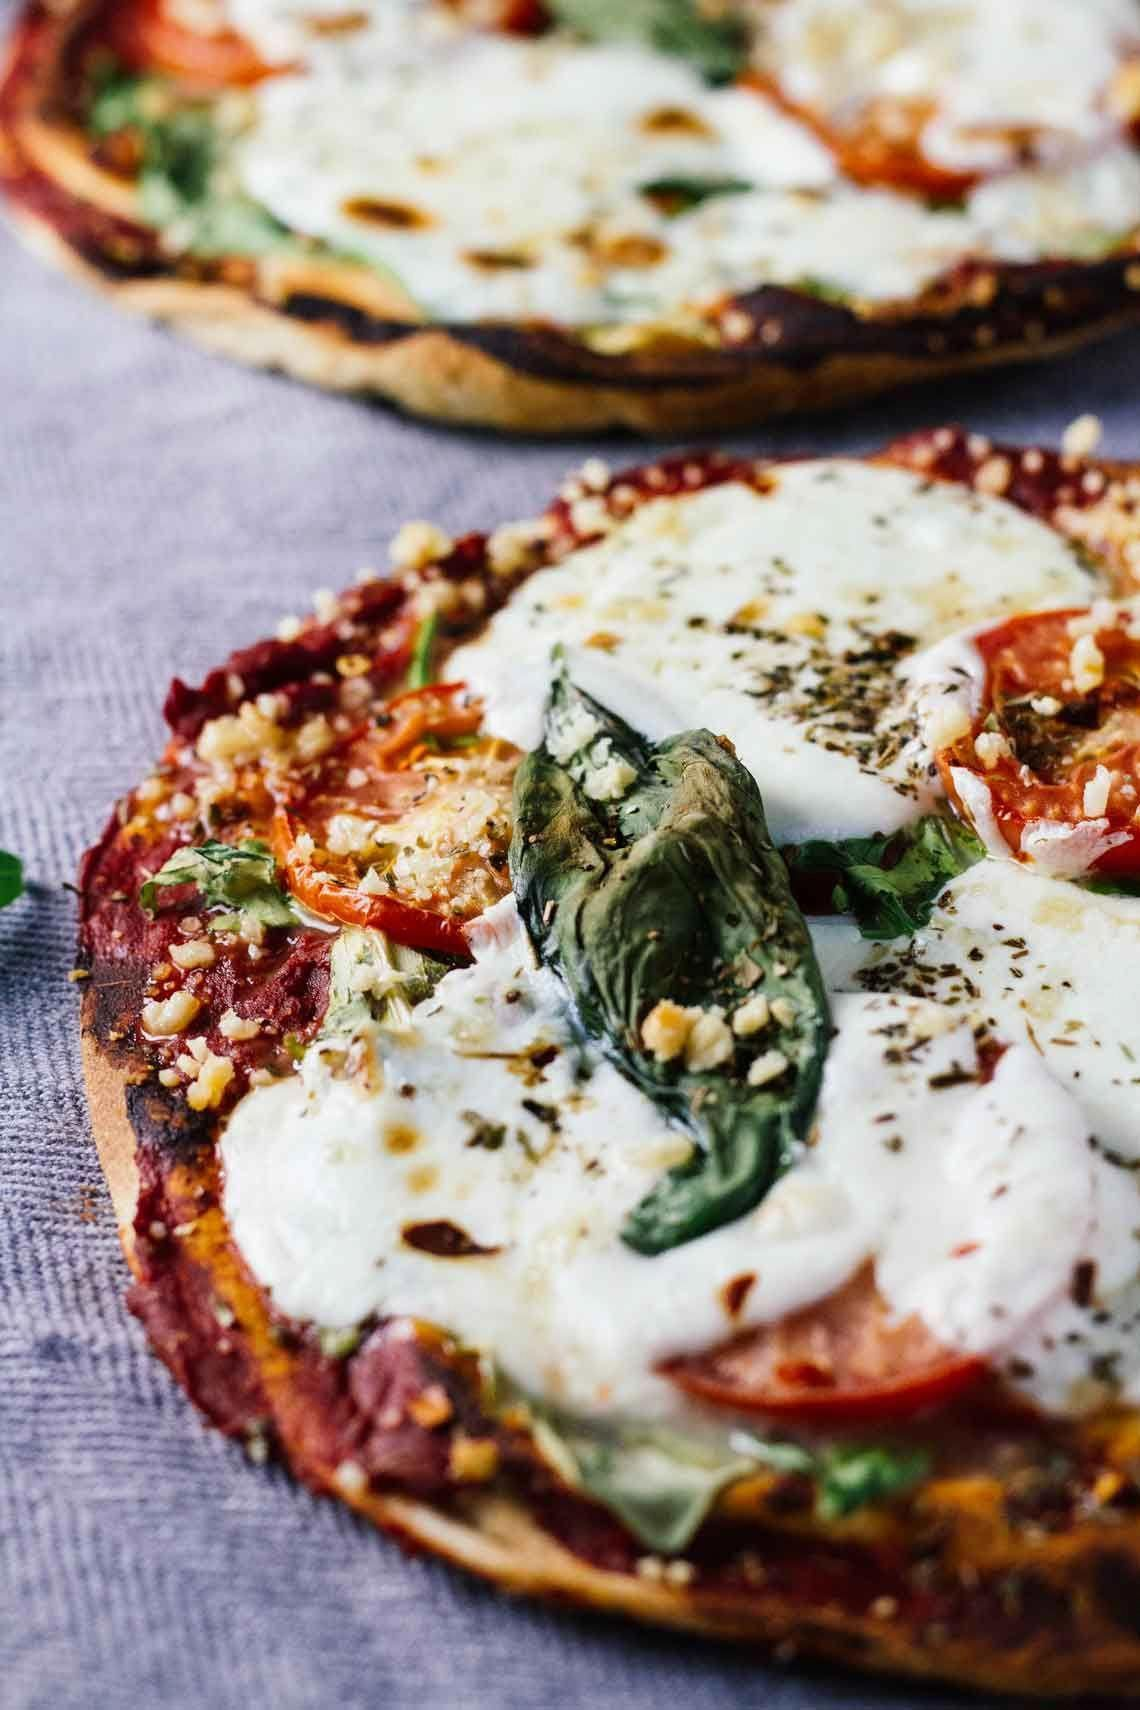 Margherita Pita Bread Pizzas Healthy delicious and easy to make Perfect for busy weeknights10Minute Margherita Pita Bread Pizzas Healthy delicious and easy to make Perfec...